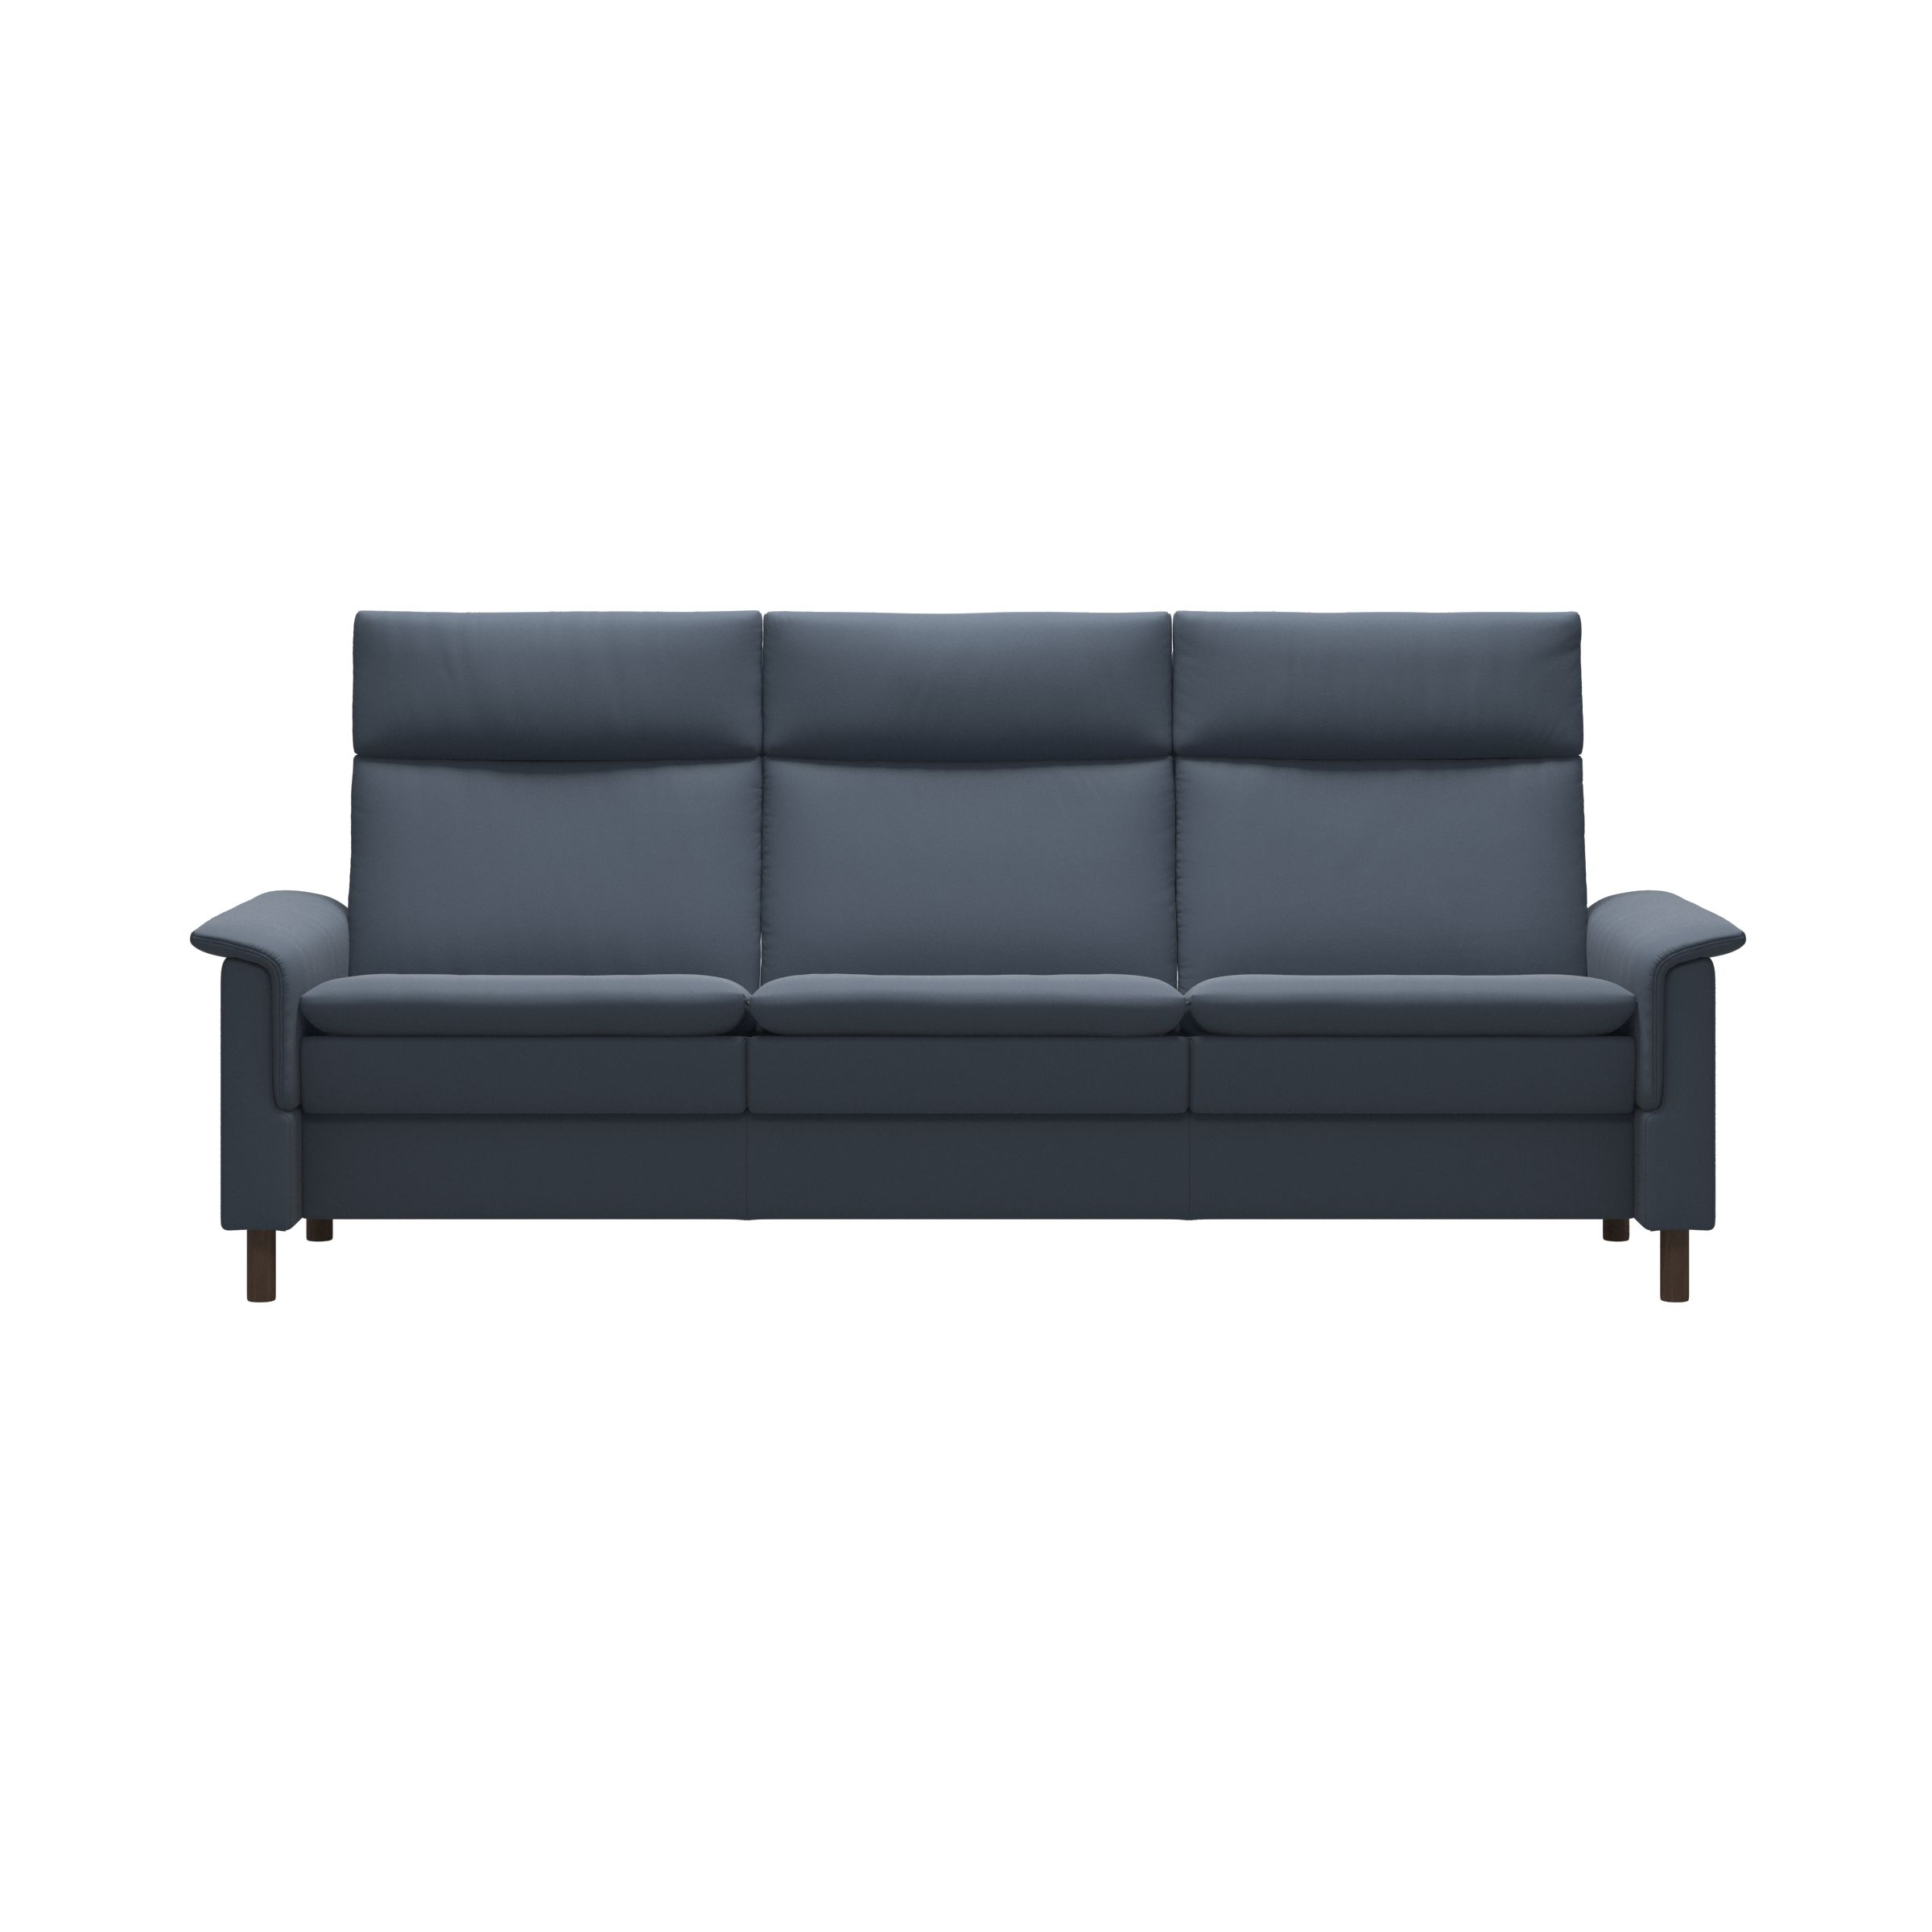 Stressless Sofa Preise Stressless Aurora High Customizable Sofa Stressless